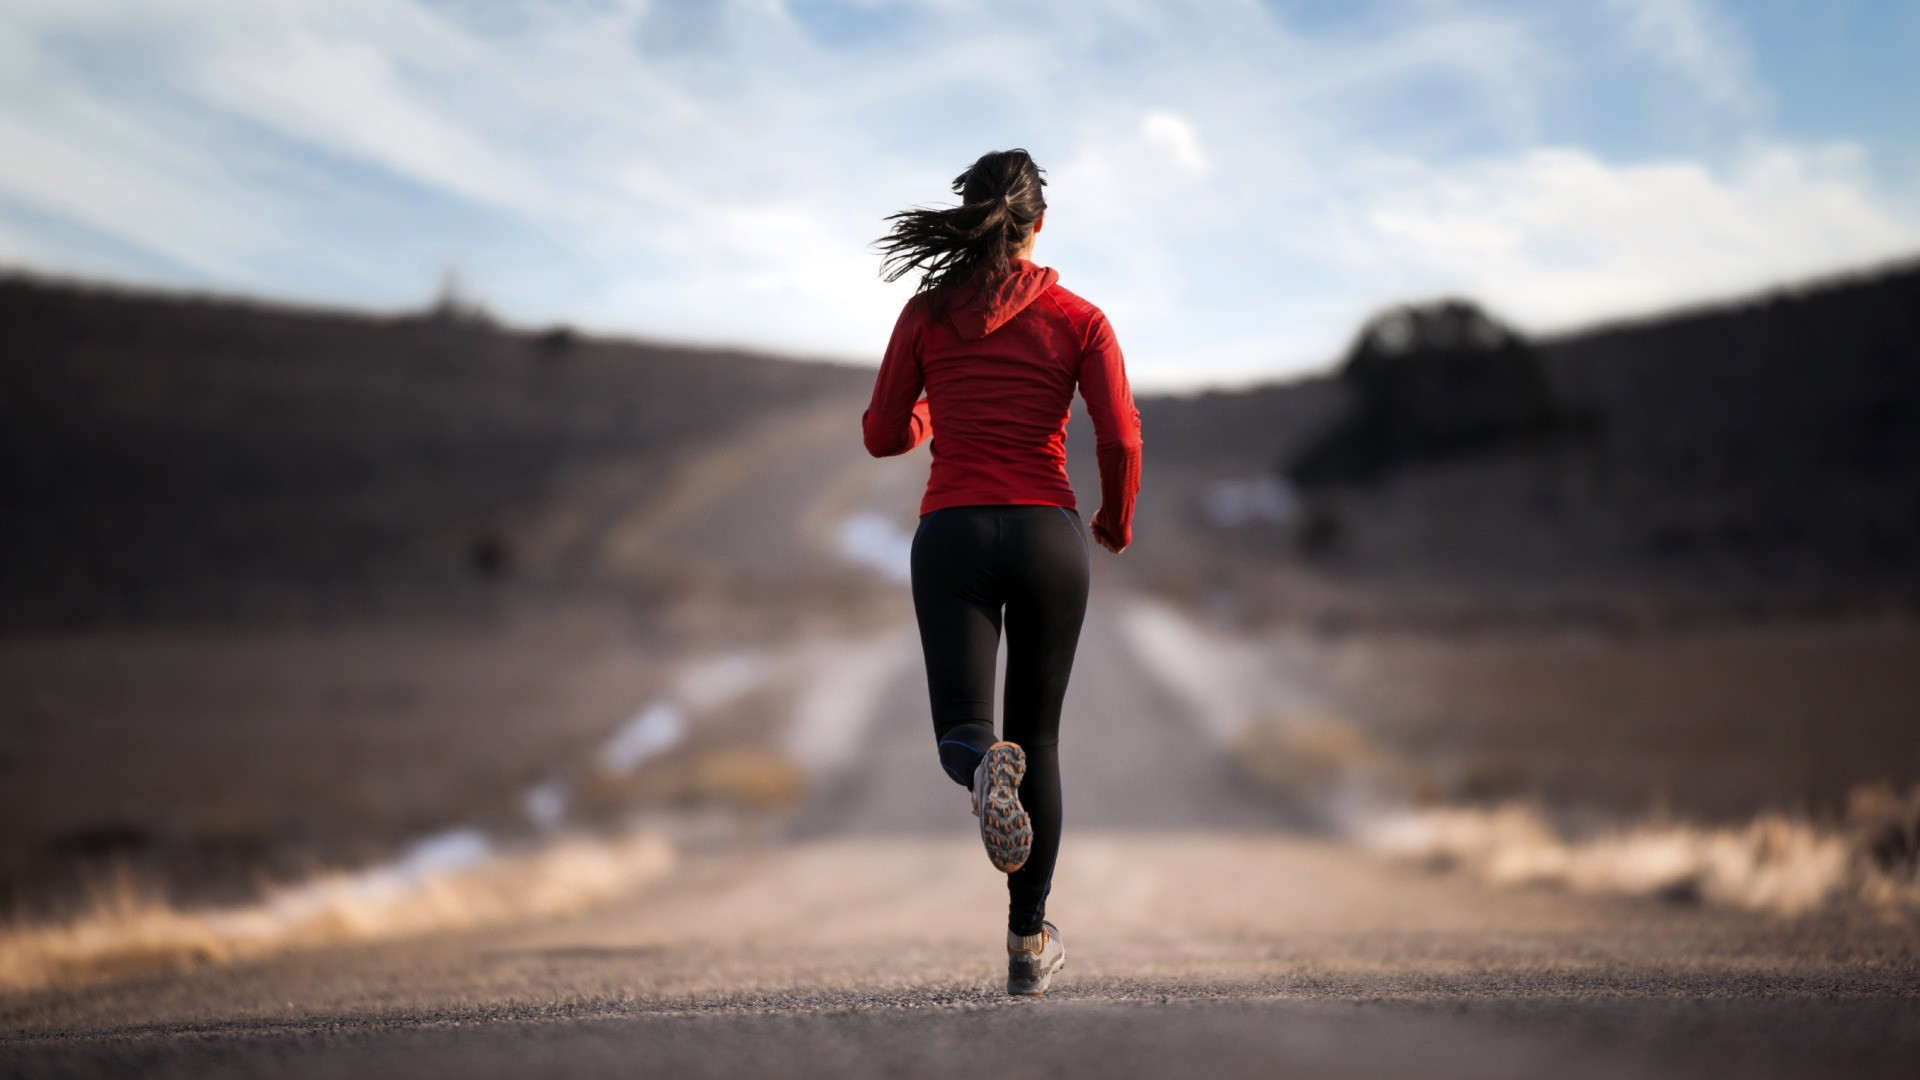 Use A Down Hill Mile Course to Improve Your Speed